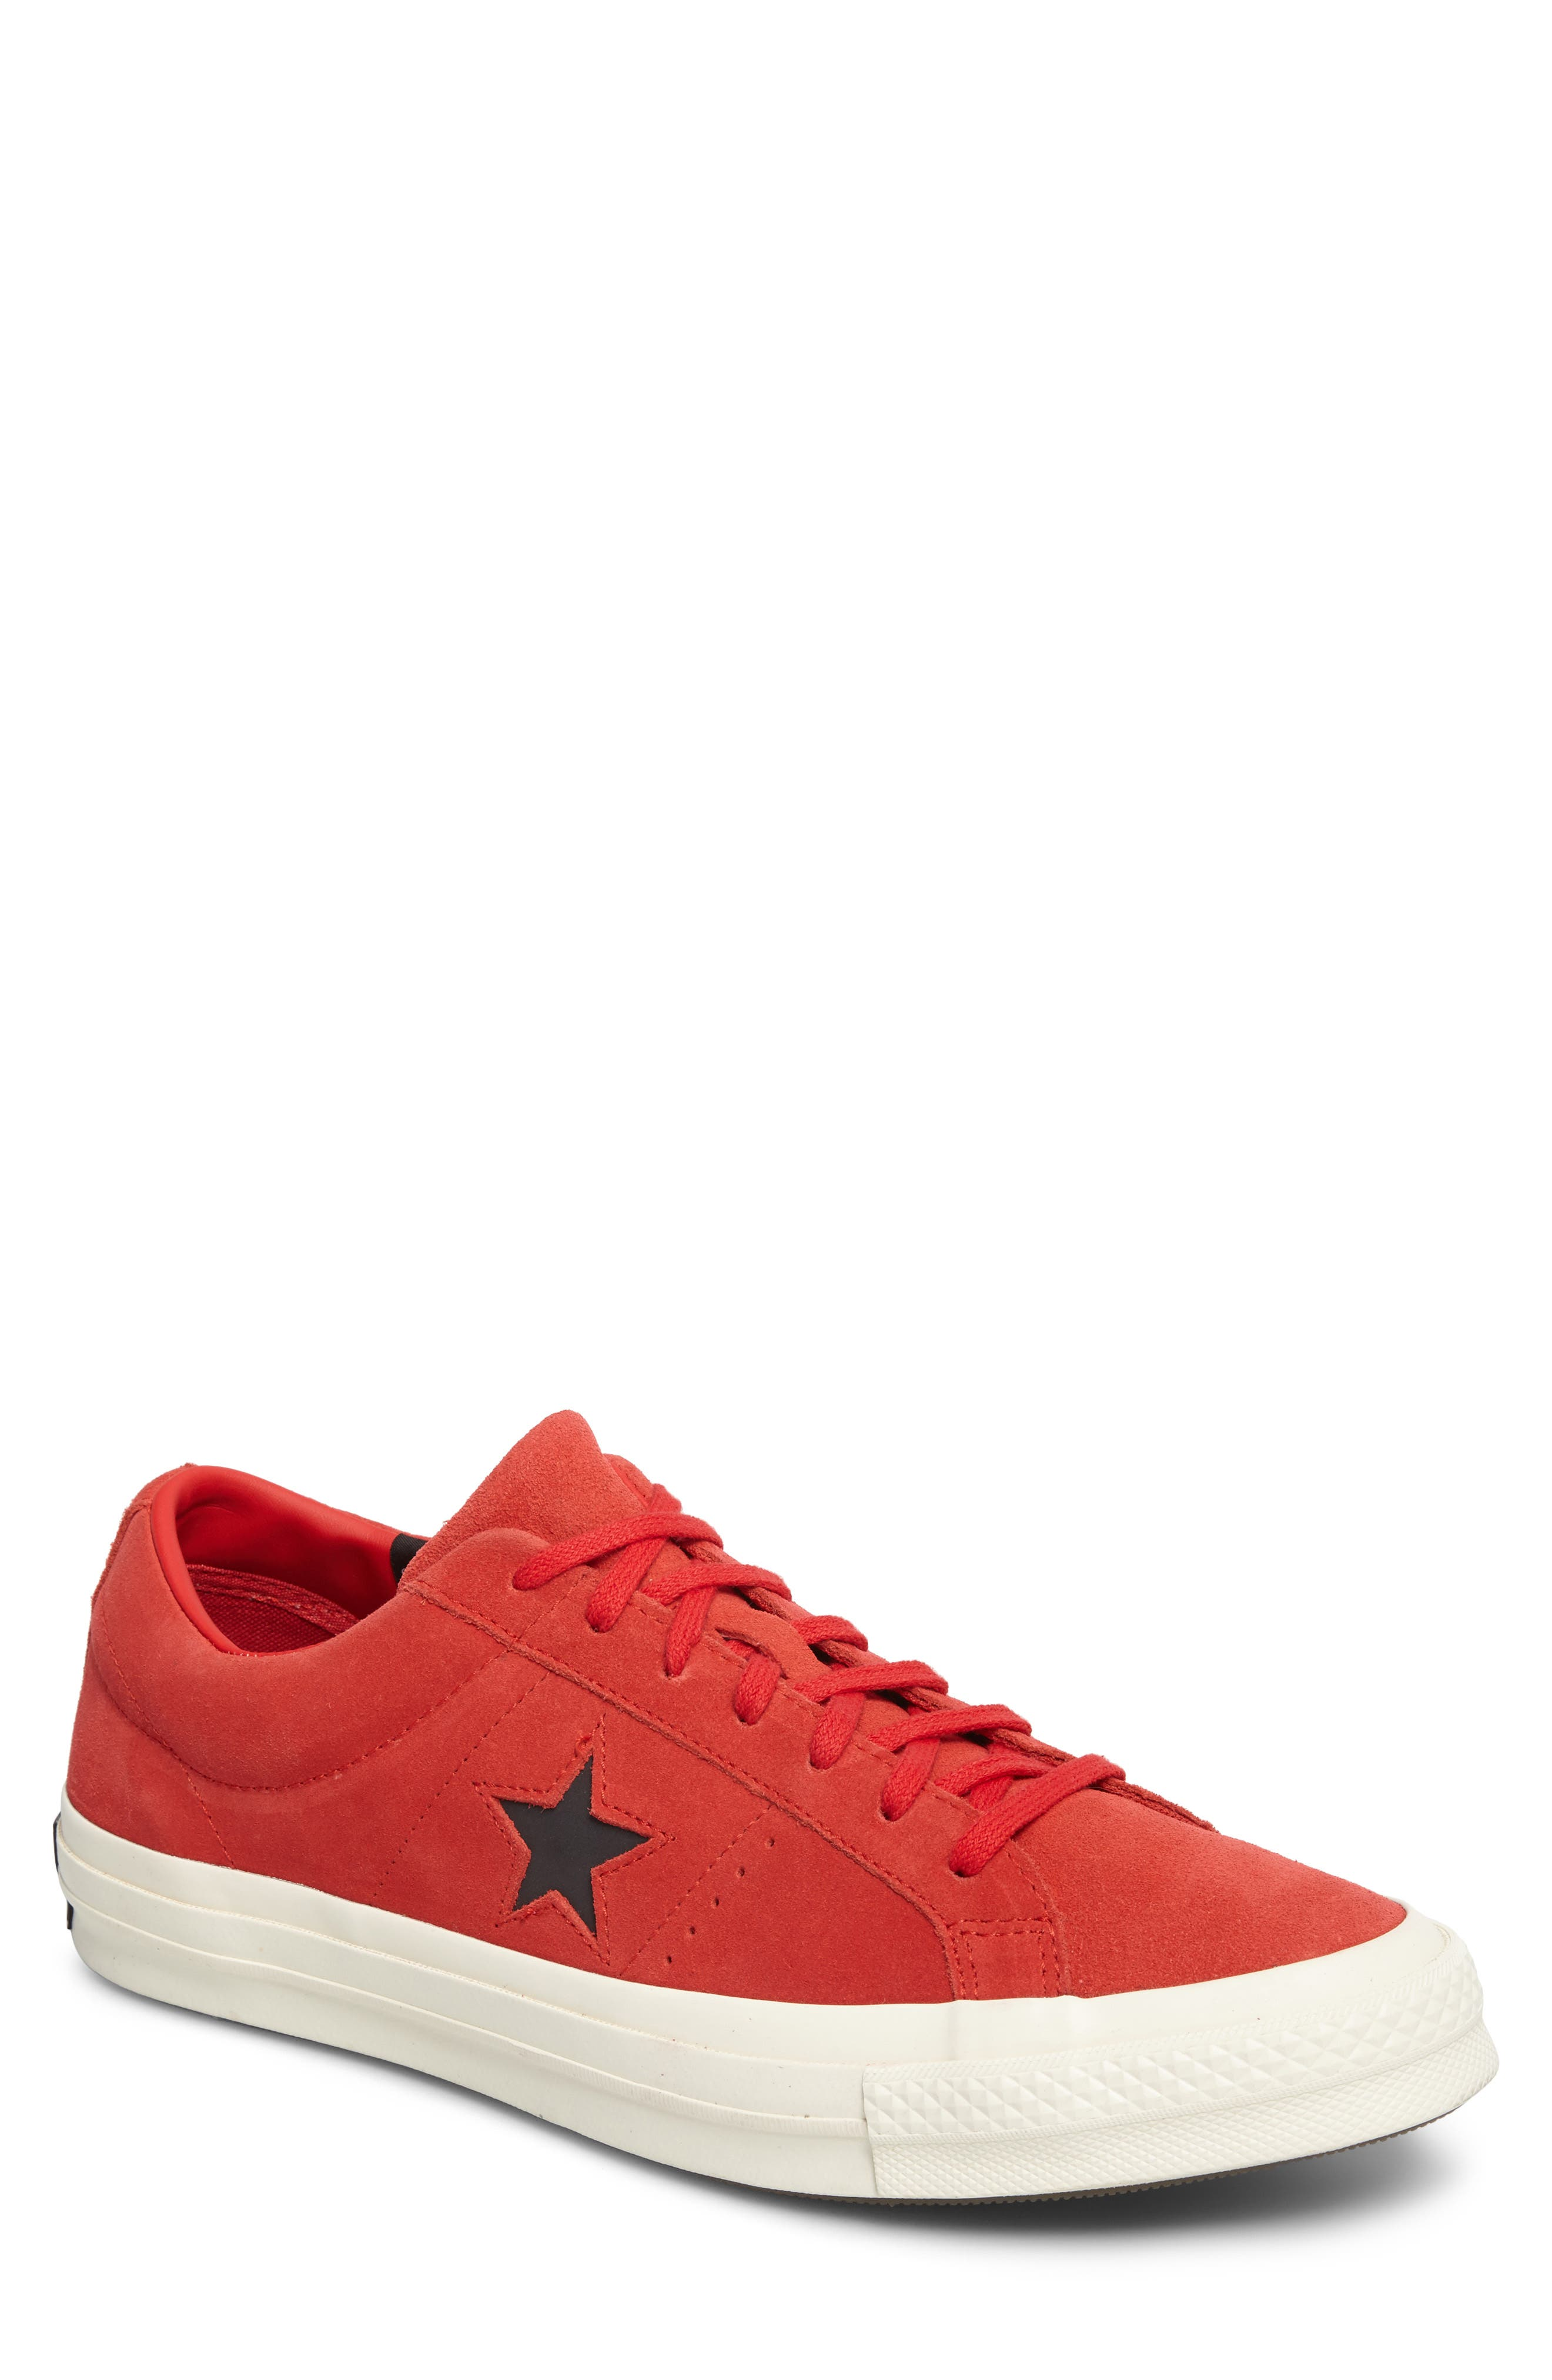 One Star Sneaker,                             Main thumbnail 3, color,